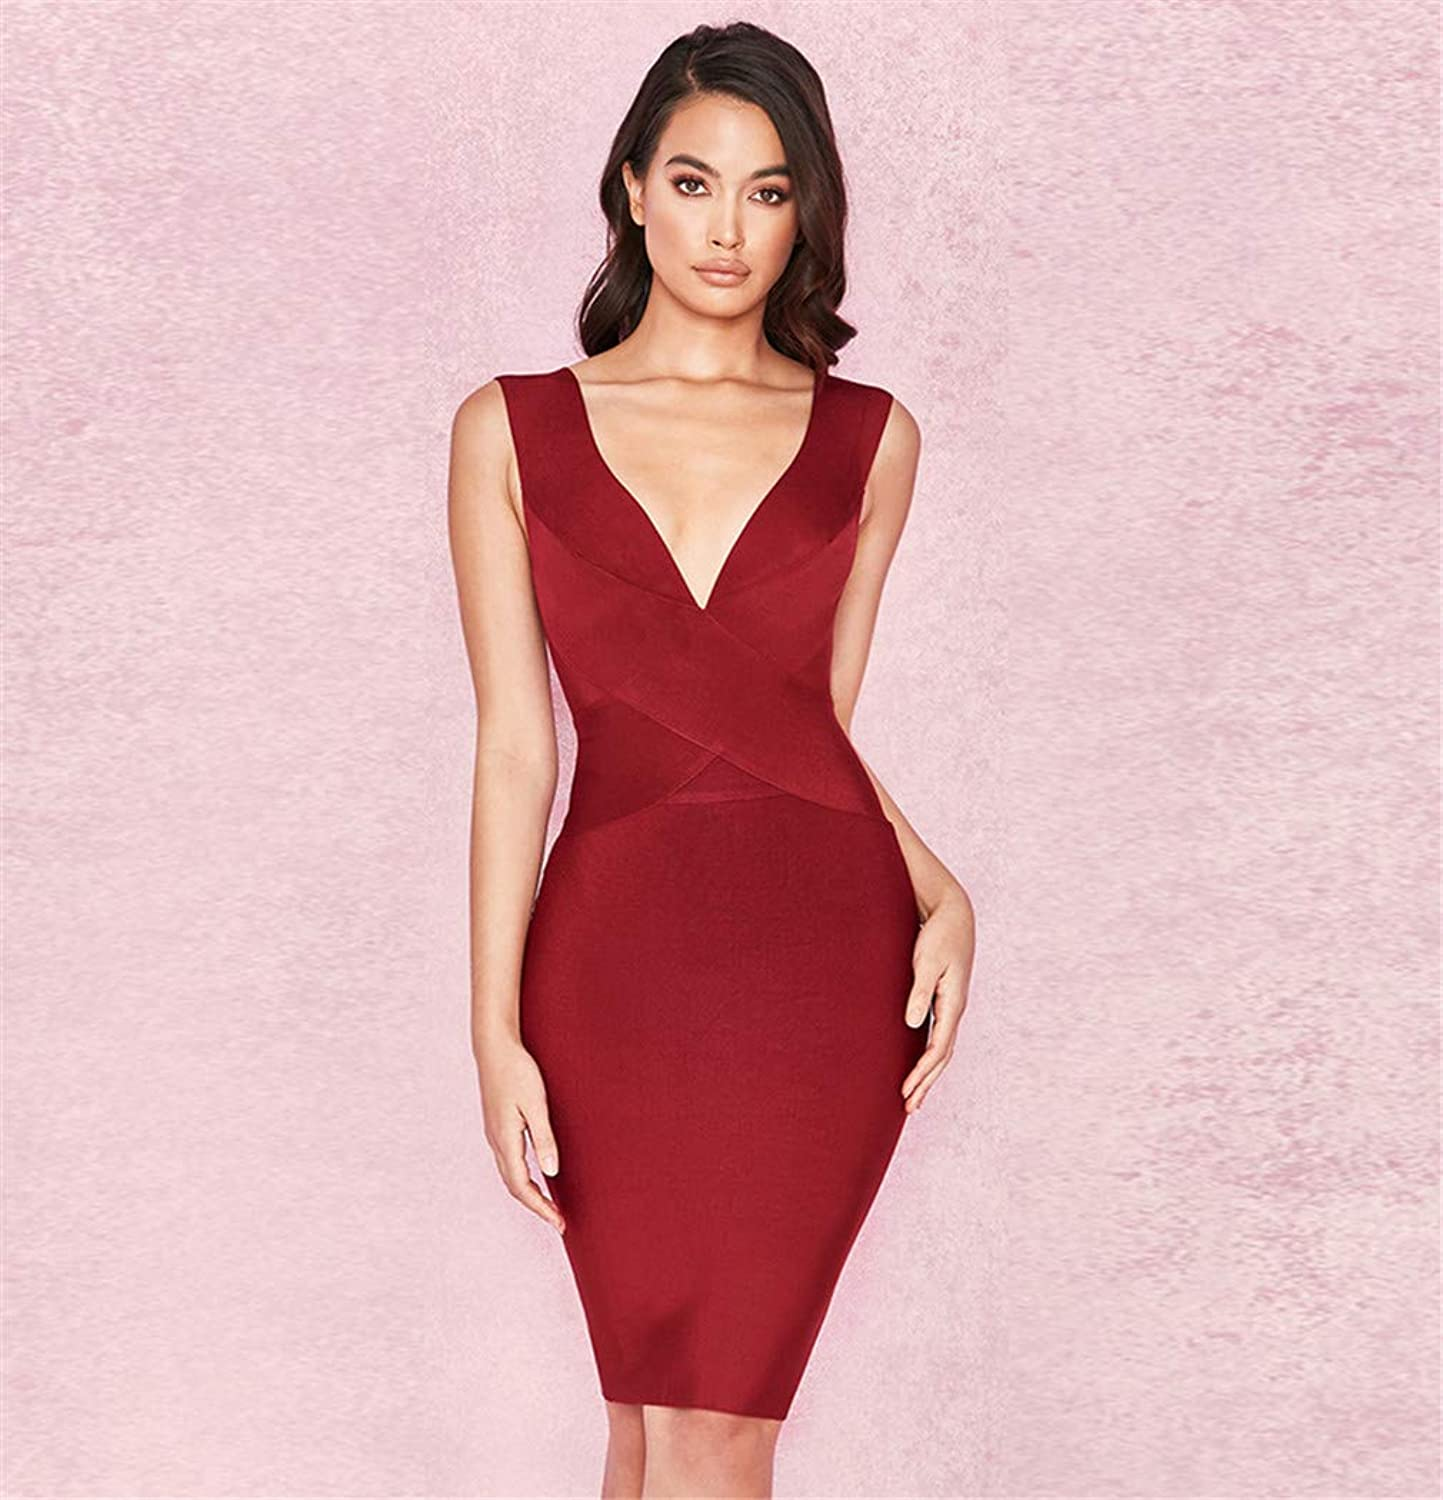 Evening Dress, Sexy red Deep VNeck Europe and America Elegant Sleeveless Spandex Slim Fit Party Party Dress